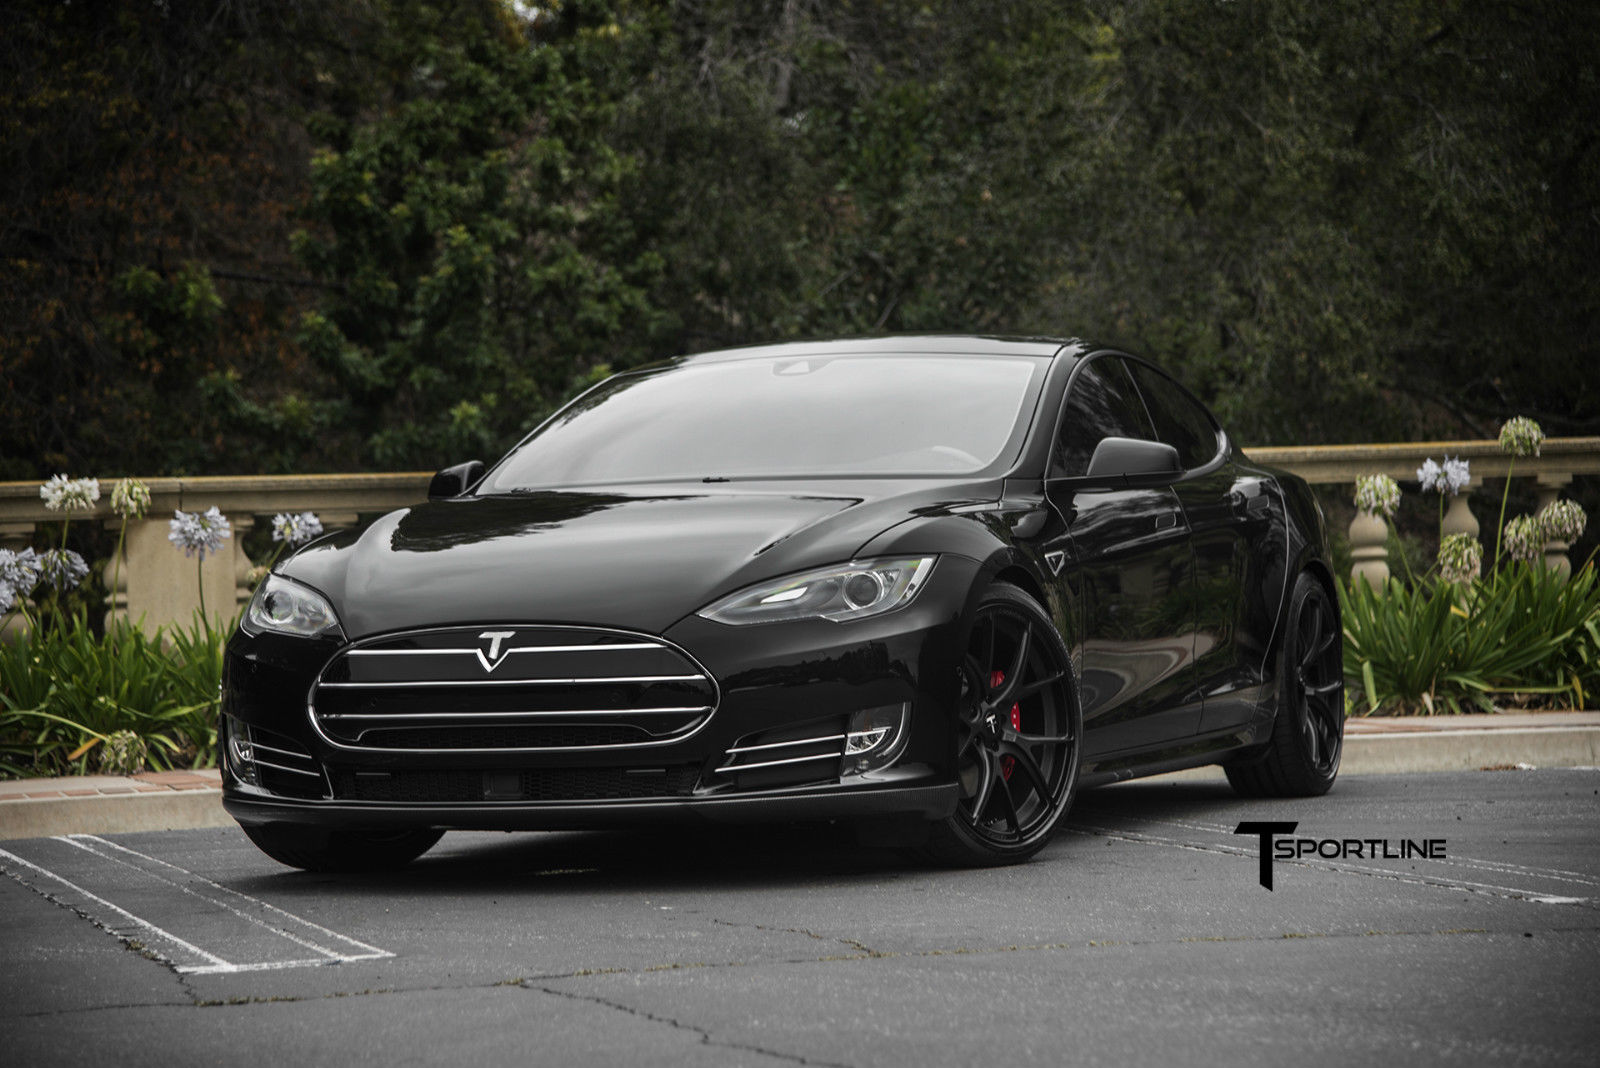 most expensive tesla model s in the world costs 175 000 on ebay autoevolution. Black Bedroom Furniture Sets. Home Design Ideas